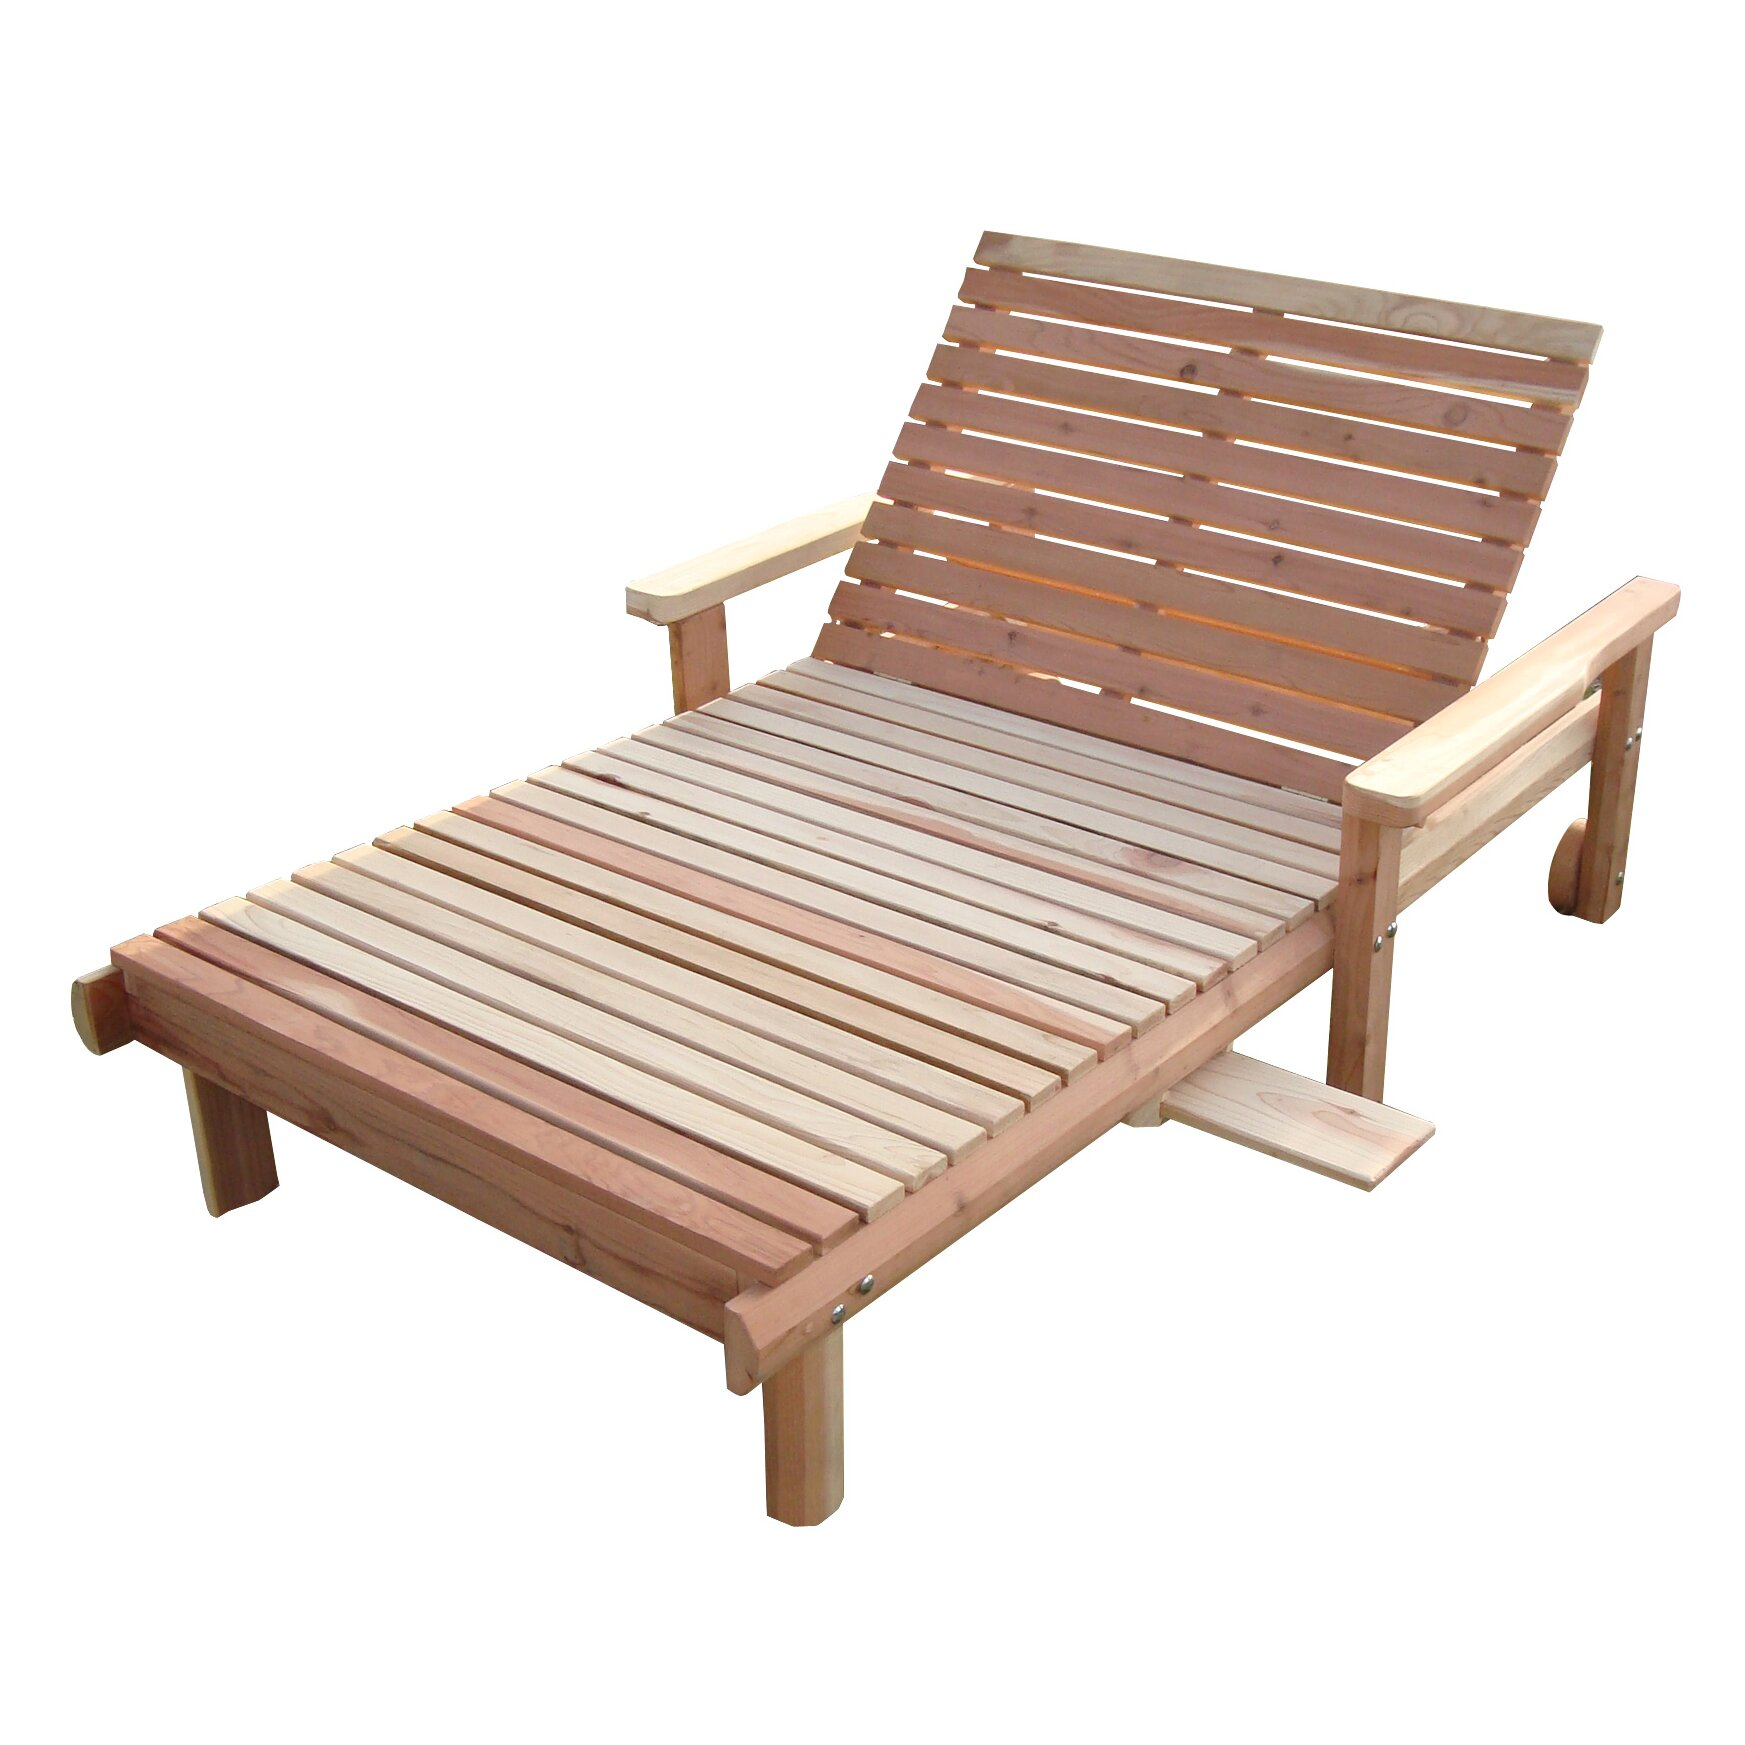 Beach chaise lounge wayfair for Beach chaise lounger